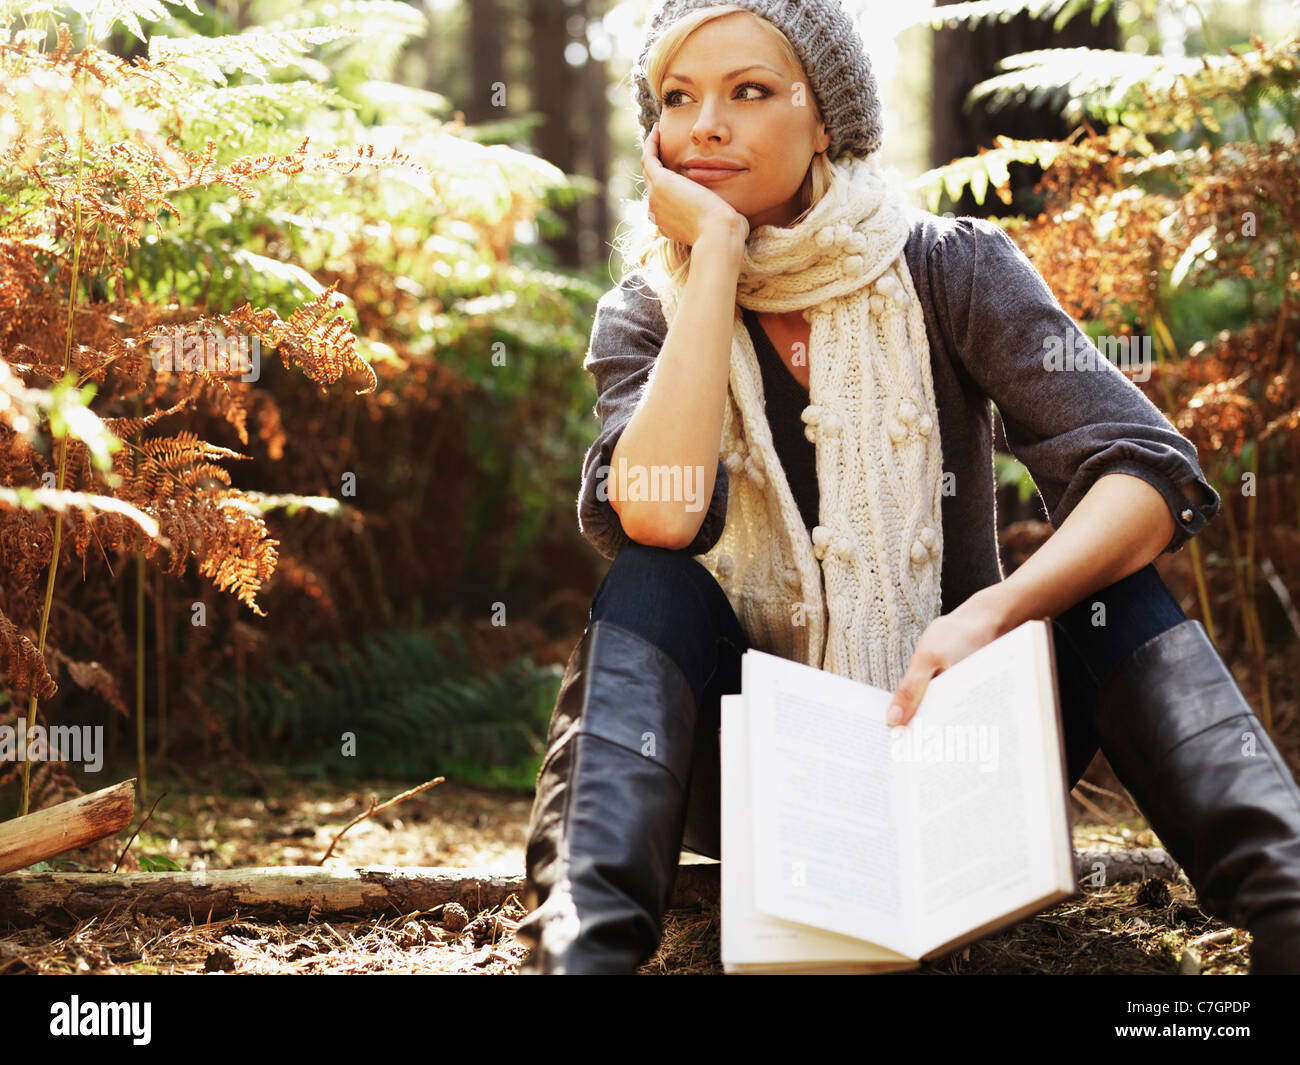 A woman in contemplation holding a book, outdoors - Stock Image